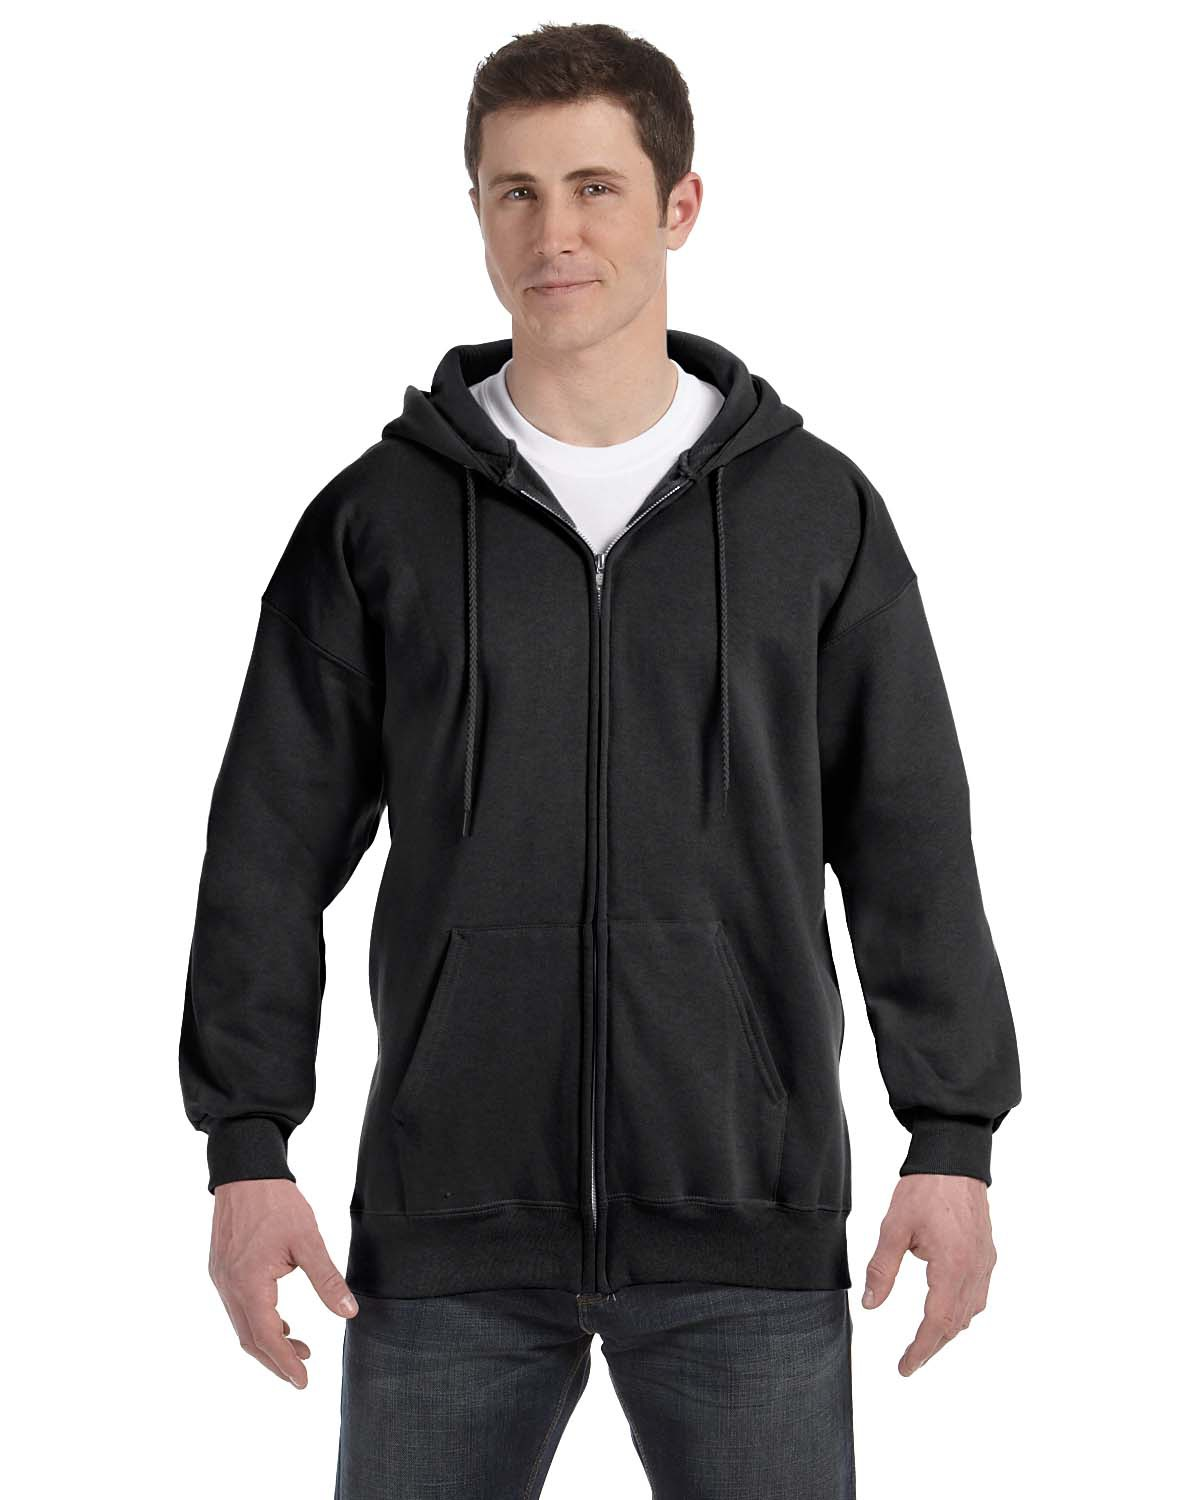 Hanes F280 - PrintProXP Ultimate Cotton Full-Zip Hooded ...